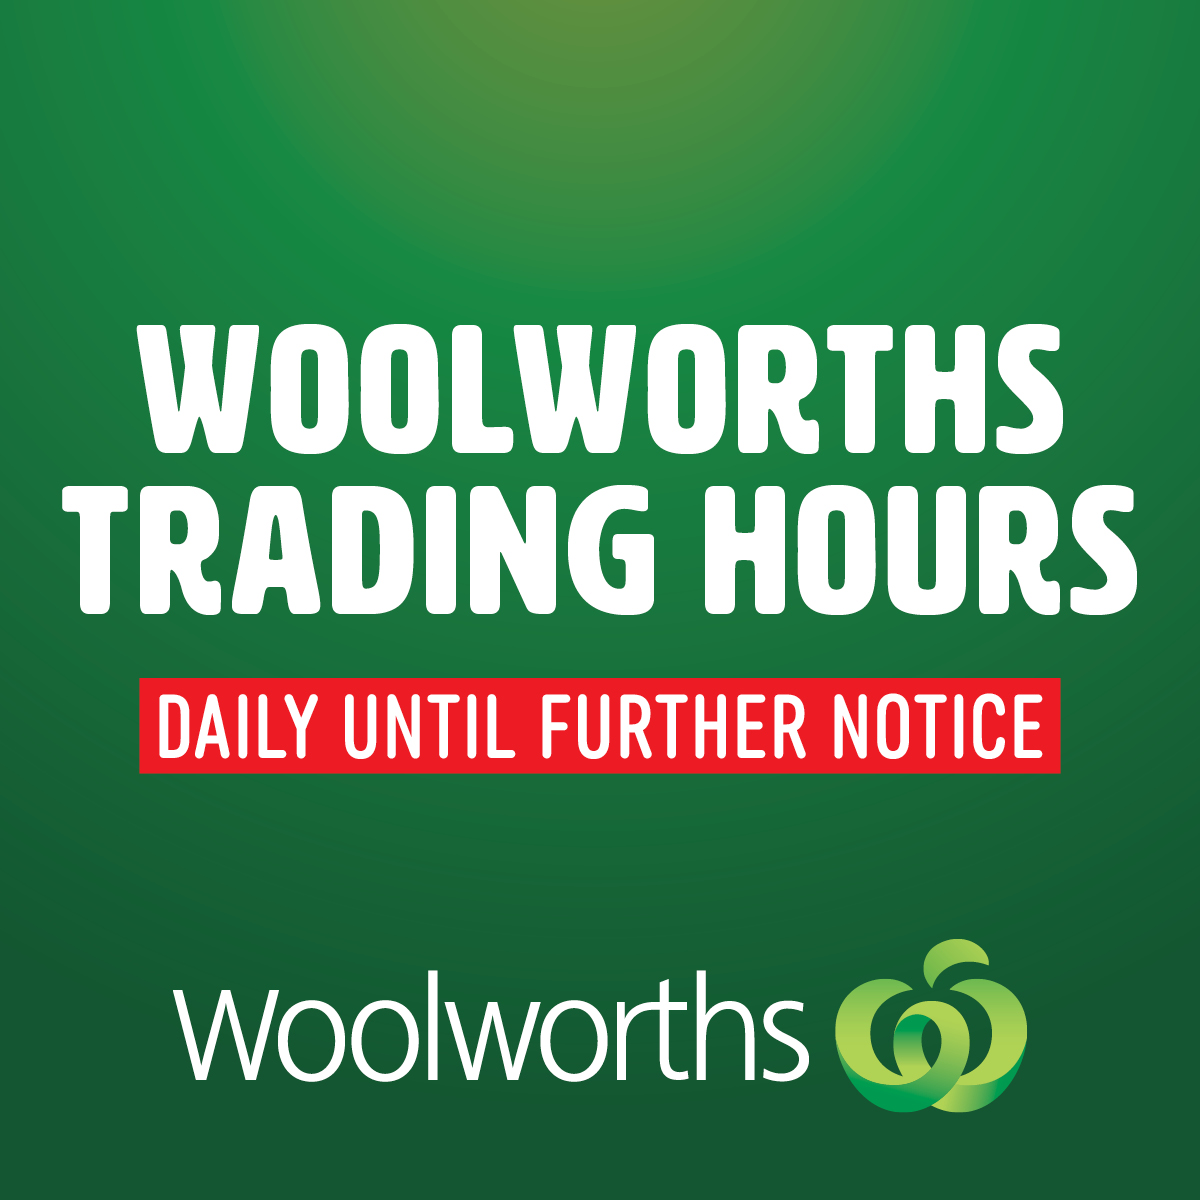 Woolworths Trading Hours Open Till 10pm Daily